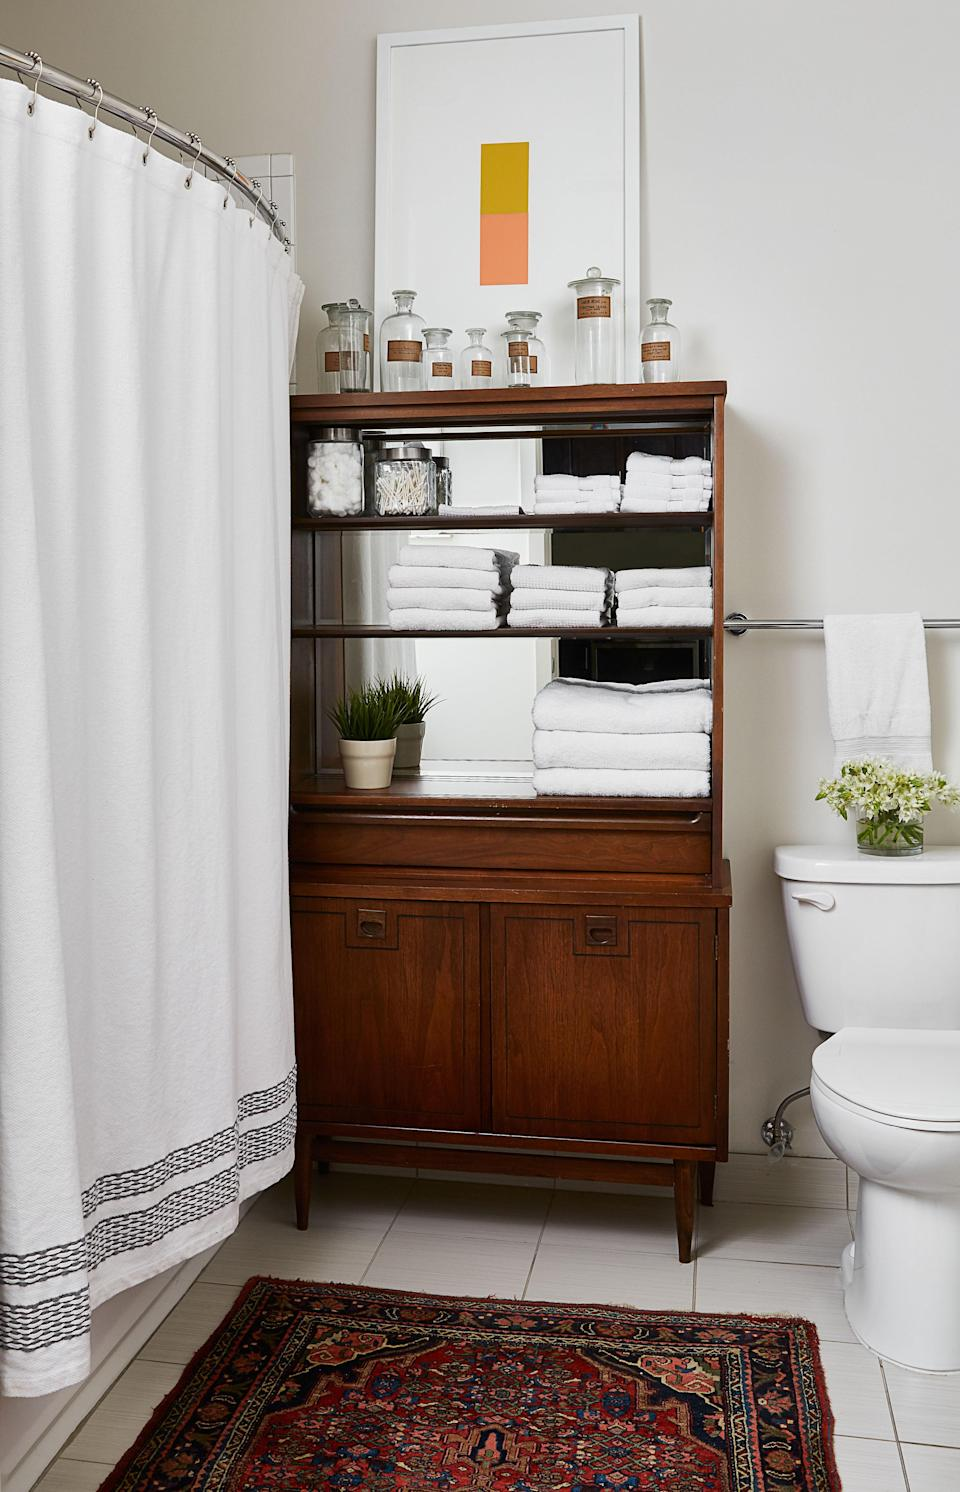 """In Risdon's bathroom, a cabinet purchased on eBay holds towels and vintage apothecary bottles. """"That's had three lives,"""" the designer says, pointing out that he previously used the piece as a bar, and before that as a china cabinet. Like the rest of the apartment, the bathroom displays Risdon's flair for mixing old and new."""